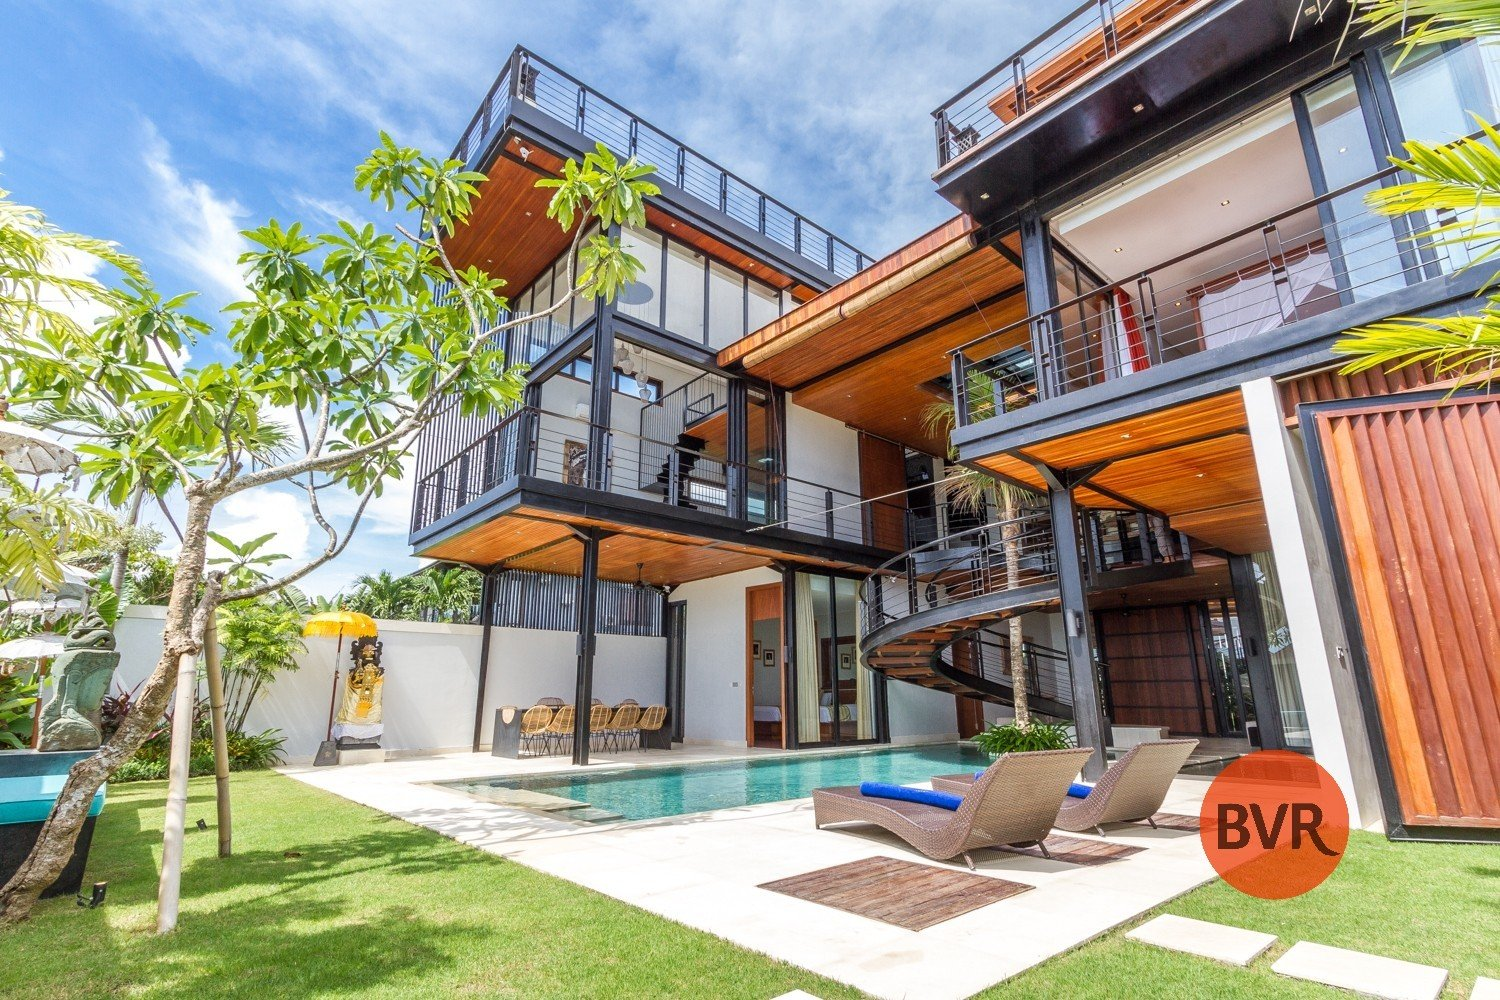 BALI VILLA LUXURY ROOFTOP OCEAN VIEW INTERNATIONAL ARCHITECT